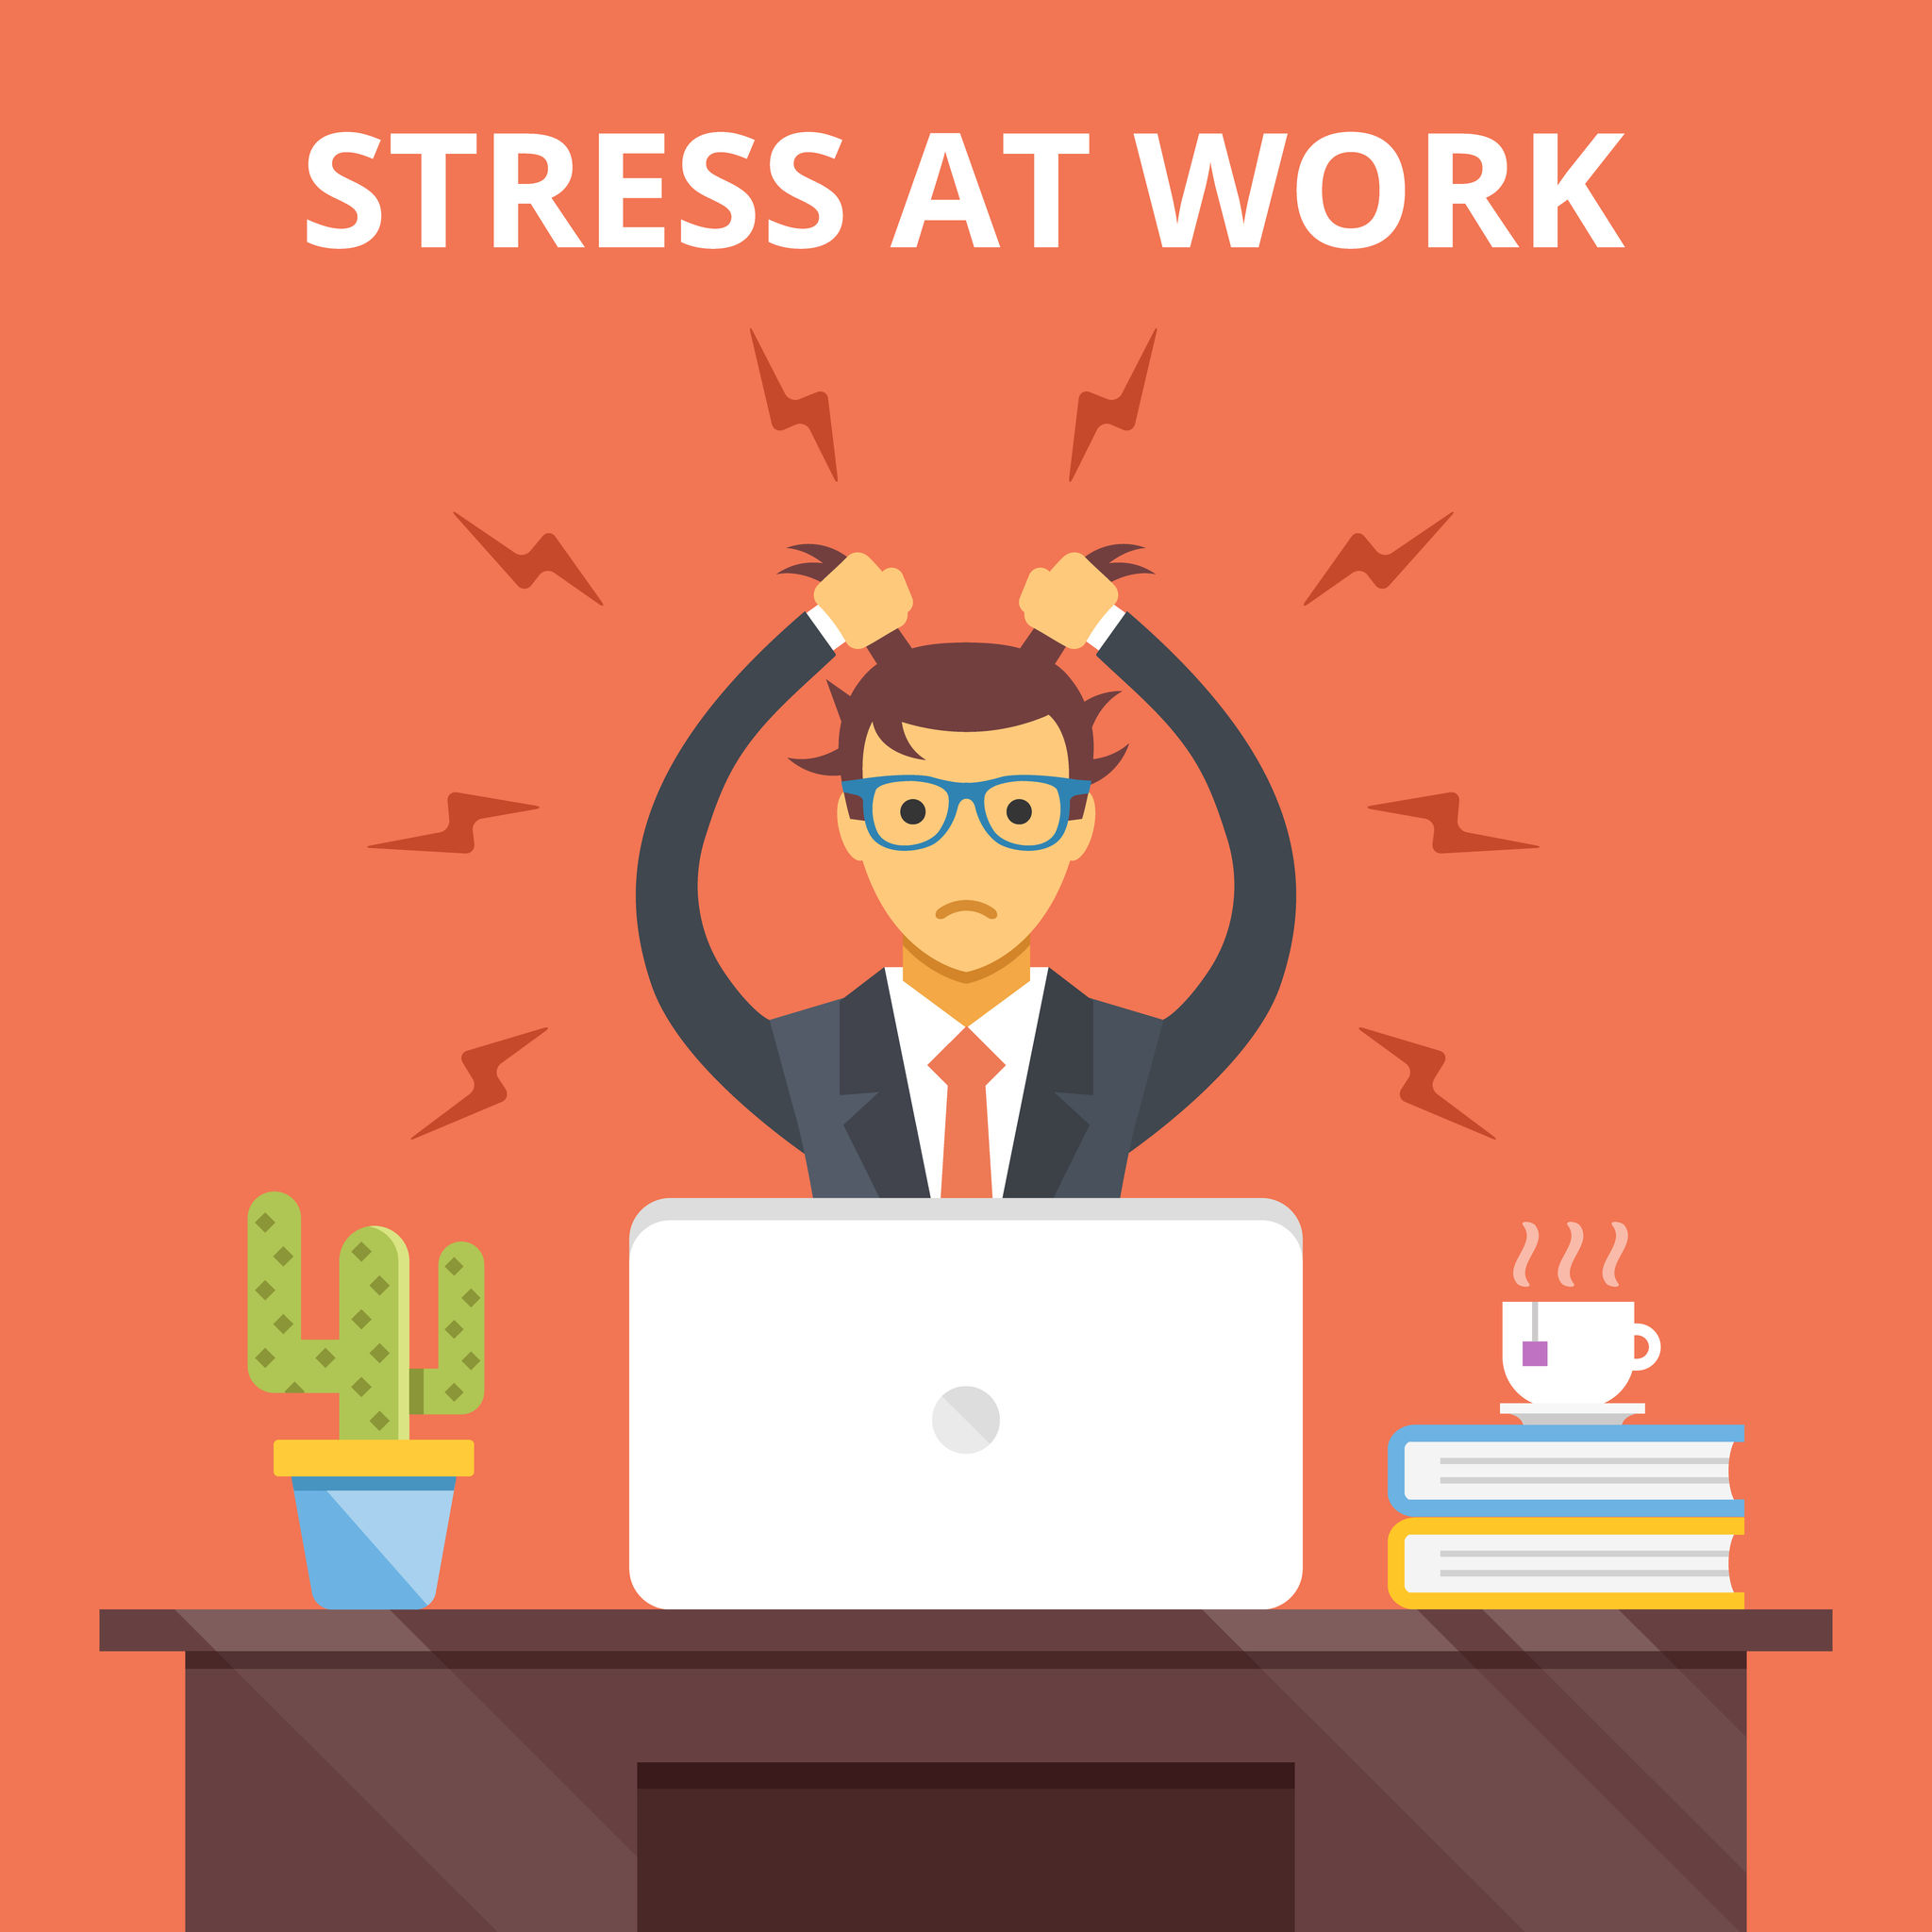 46607958 – stress at work. stress situation concept. vector flat illustration